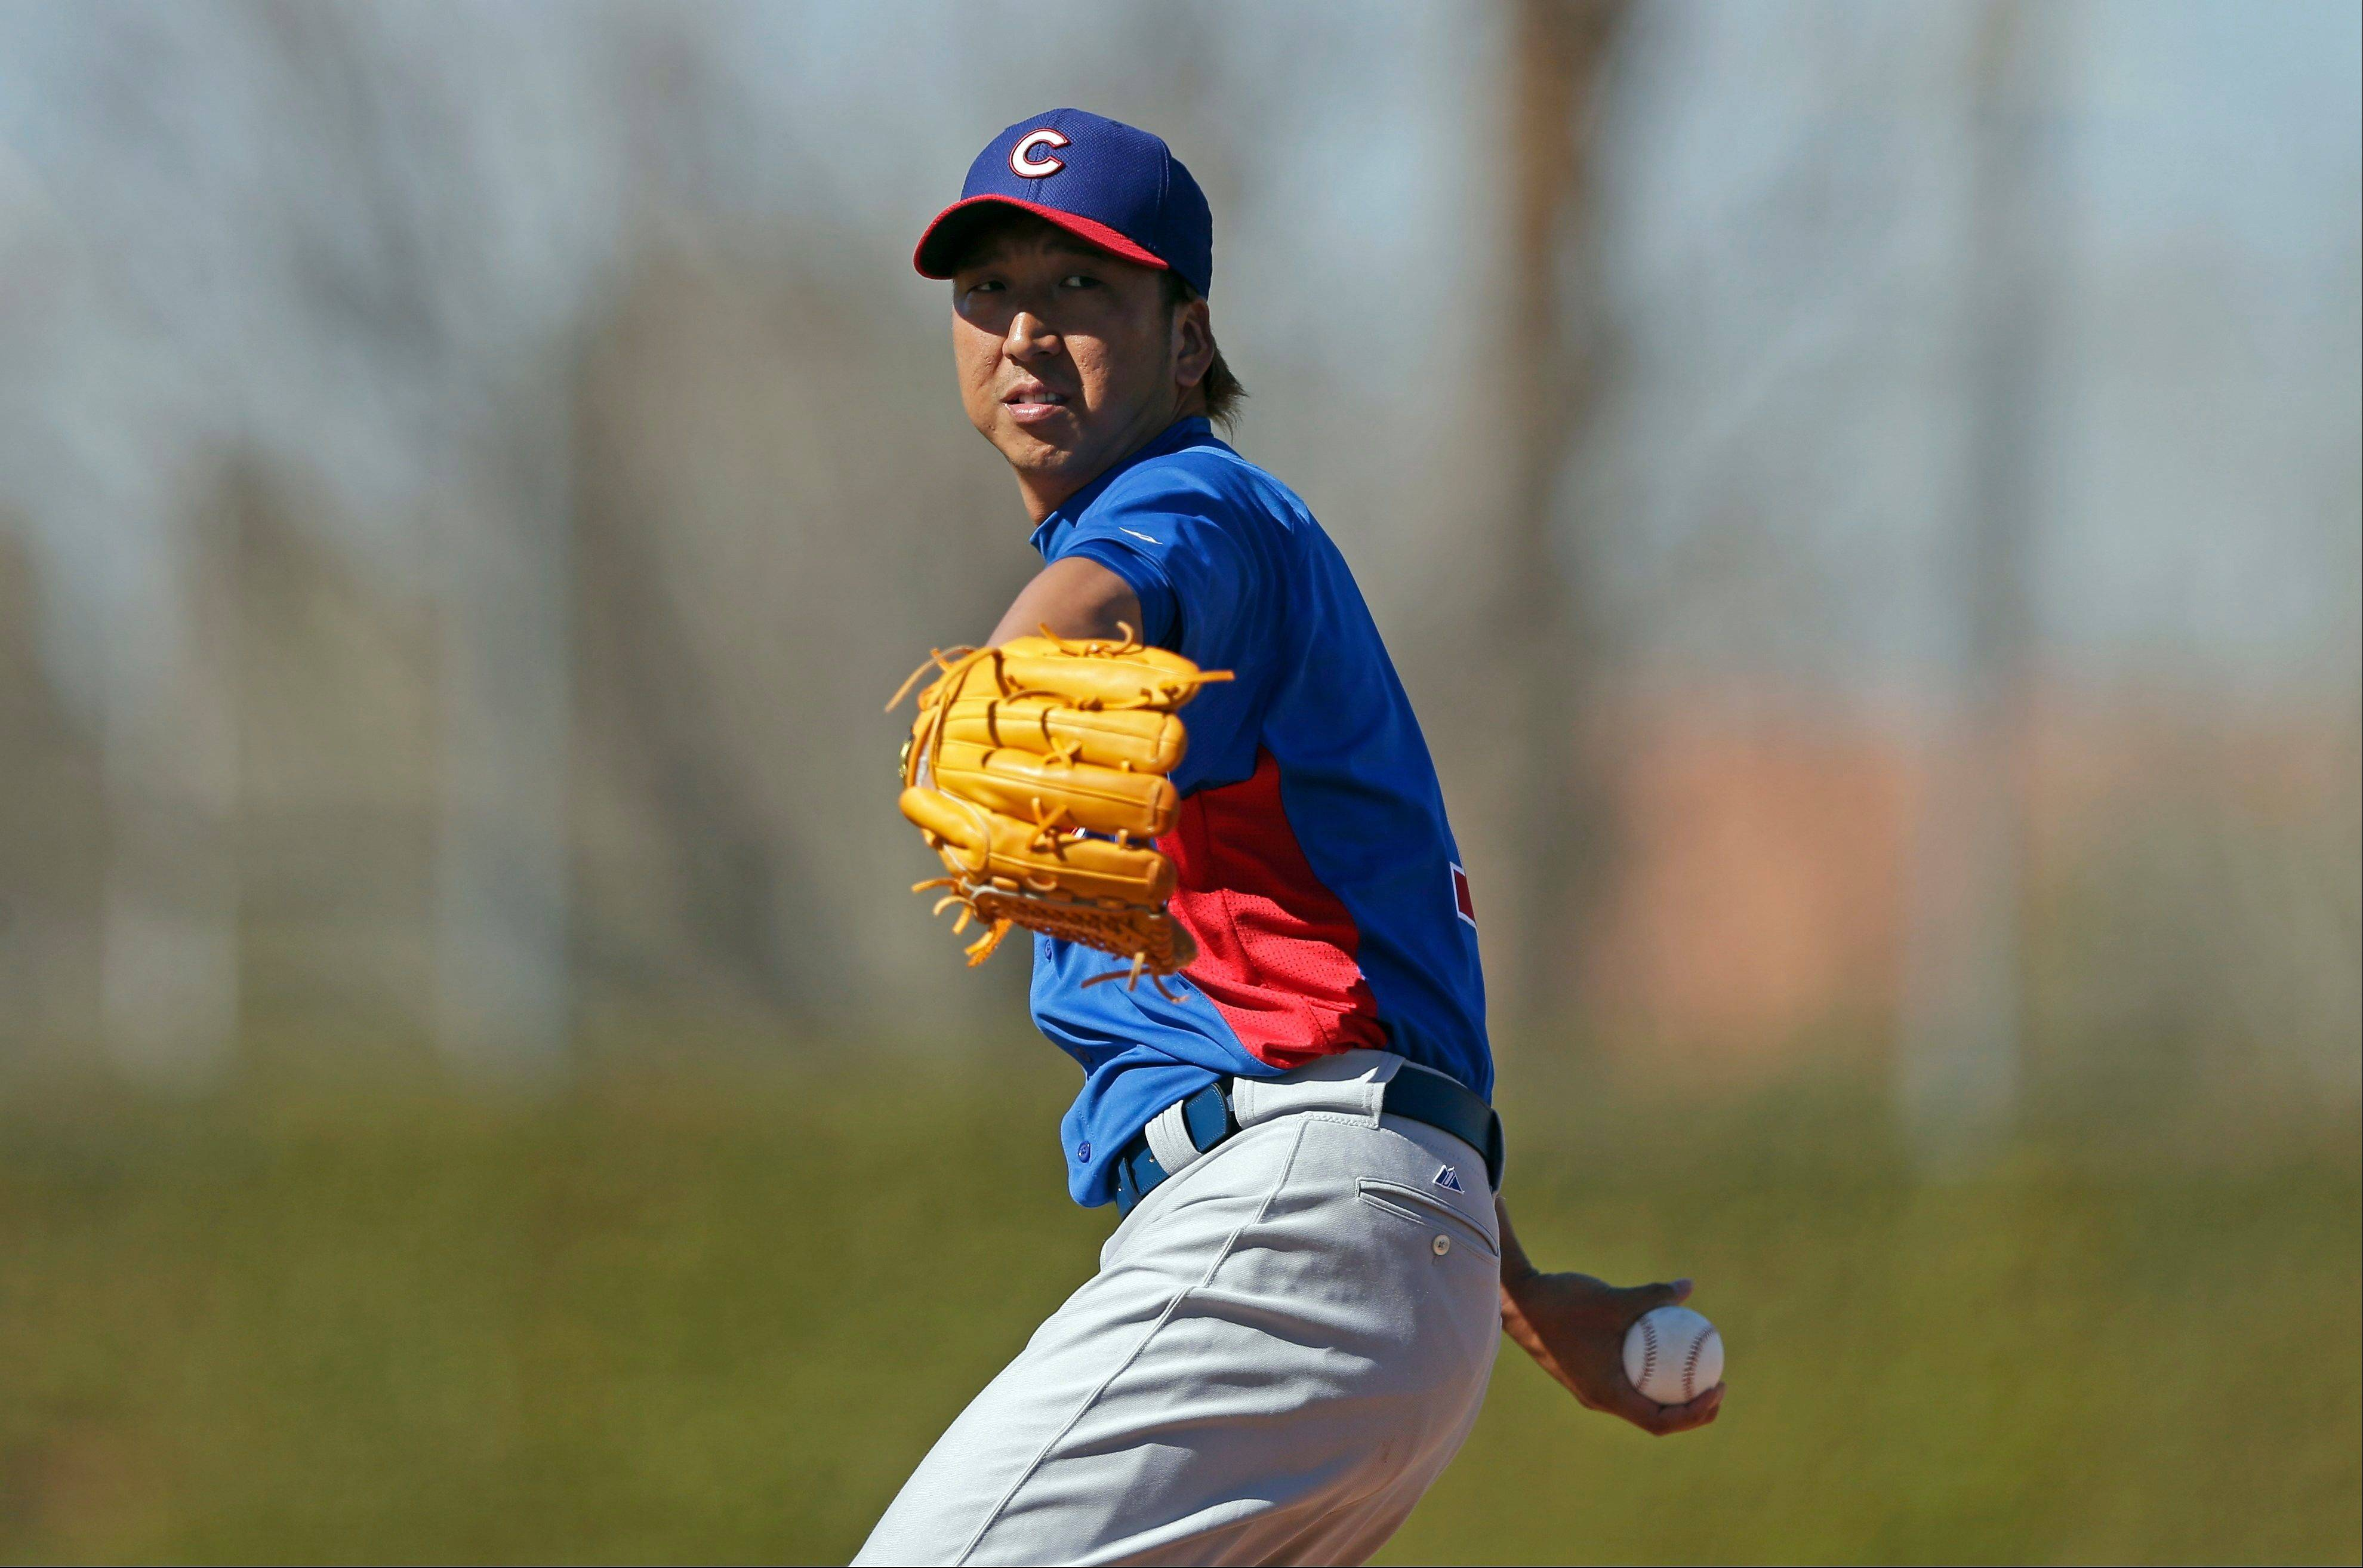 The Cubs expect to get a lot of innings from 32-year-old reliever Kyuji Fujikawa, who had a 1.32 ERA in Japan last year.